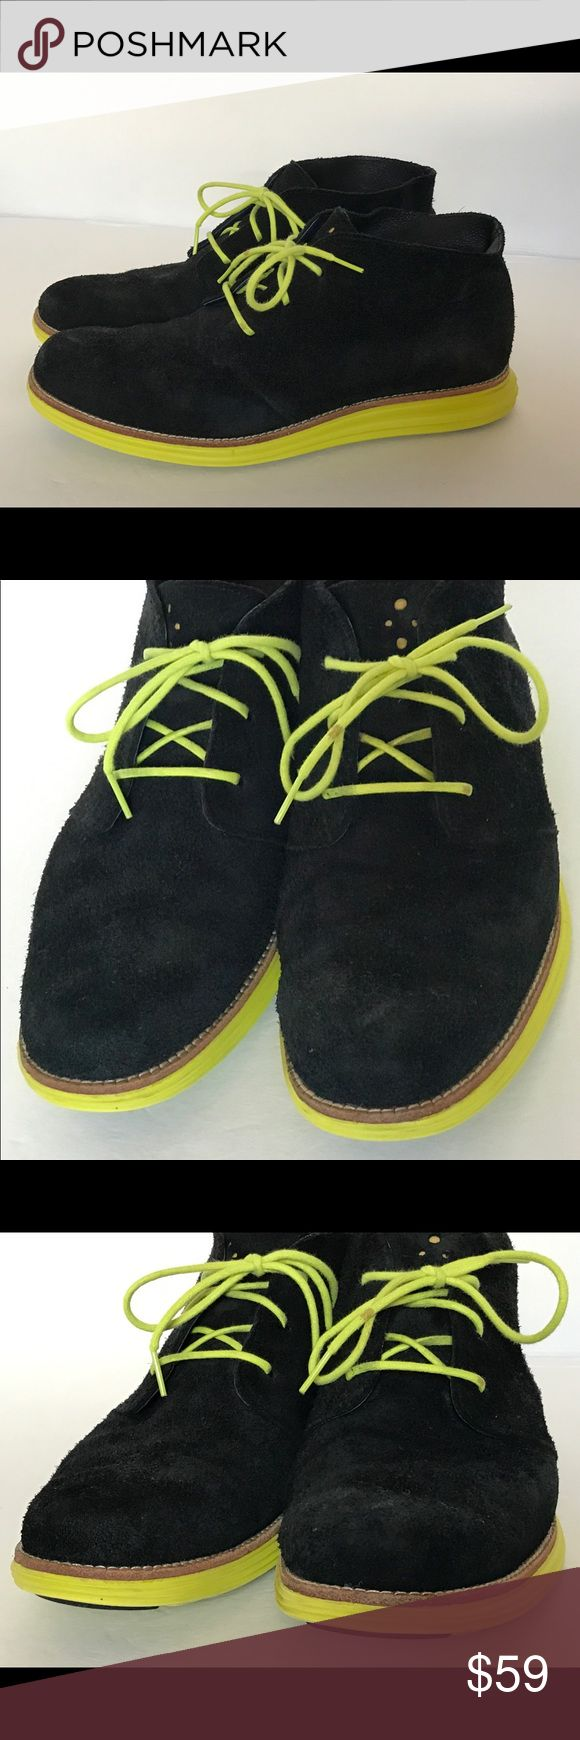 COLE HAAN Lunargrand Suede Chukka Boot SZ 9.5 Excellent Condition..   COLE HAAN Lunargrand Suede / Leather Chukka Boot   Size: 9.5   Color: Black / Neon Yellow Green   100% Genuine Suede   *** I'm a wardrobe stylist and these fabulous chukka's were purchased for a film and worn On set for a few scenes. They are in excellent condition, as shown in detailed pictures. Slight signs of wear on Suede and bottom soles, as shown in detailed pictures *** Cole Haan Shoes Chukka Boots